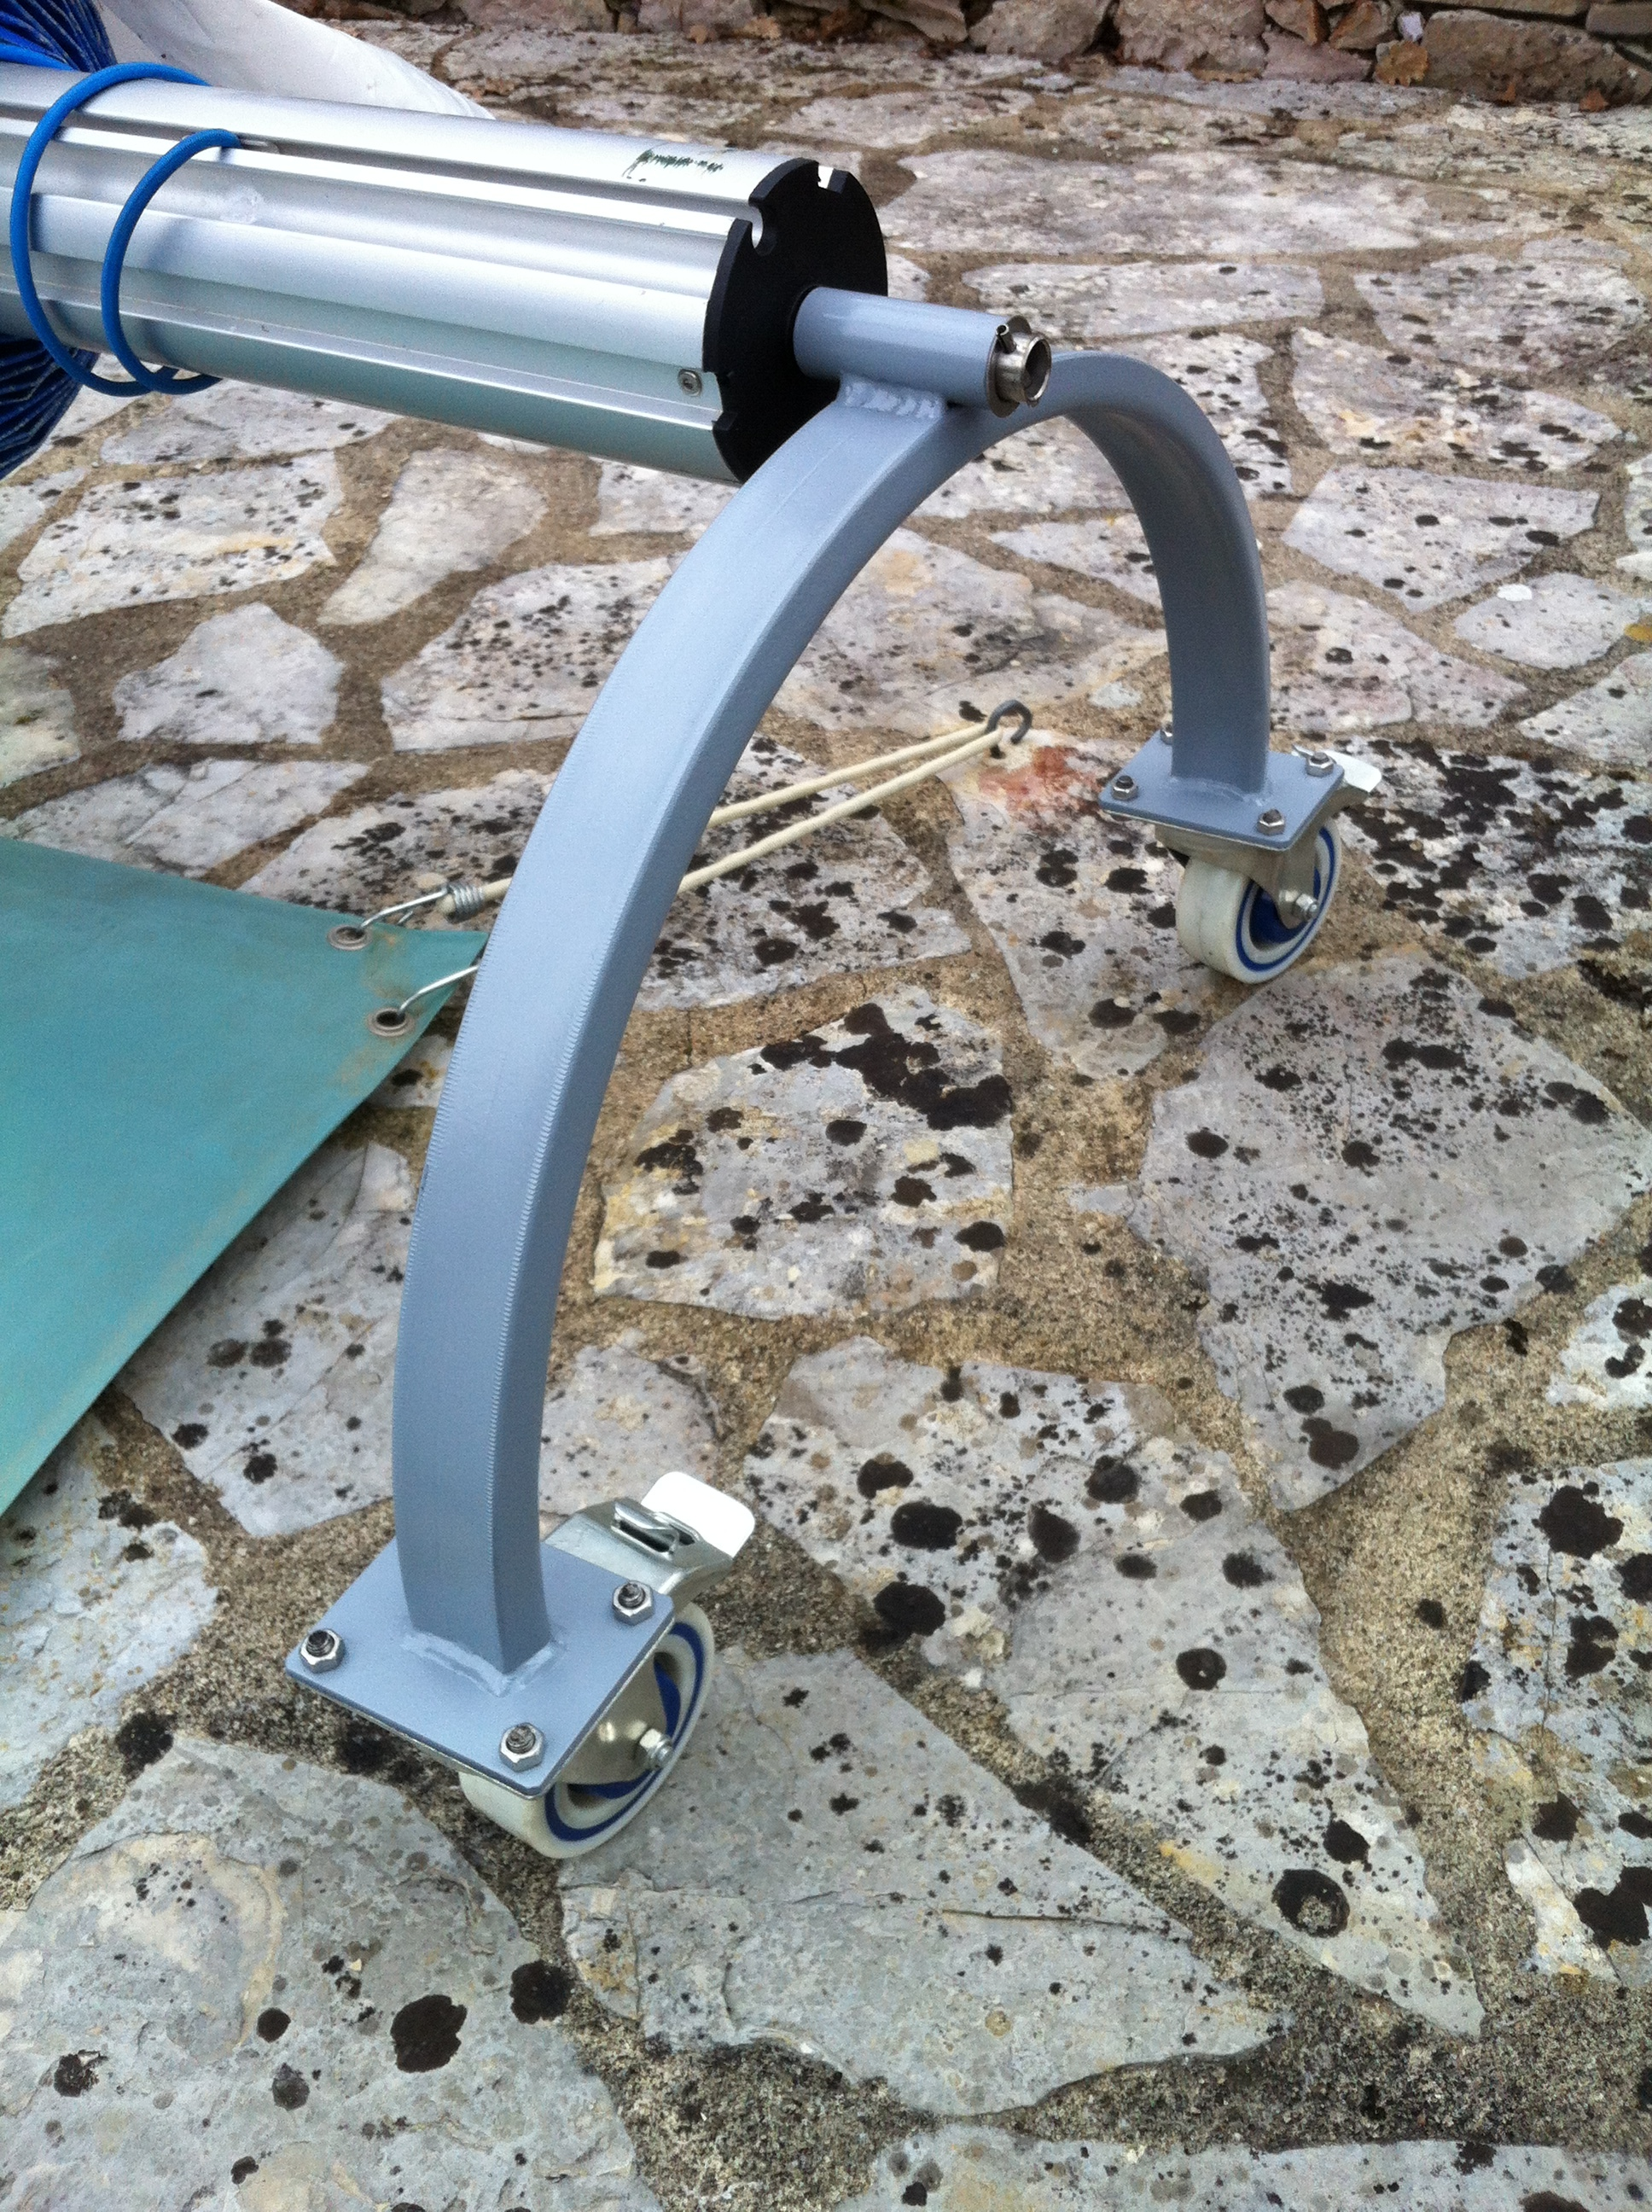 An unusual one here, fabricating strong and robust end supports for a very long pool cover holder. Note the addition of strong, locking castors for ease of moving it about.